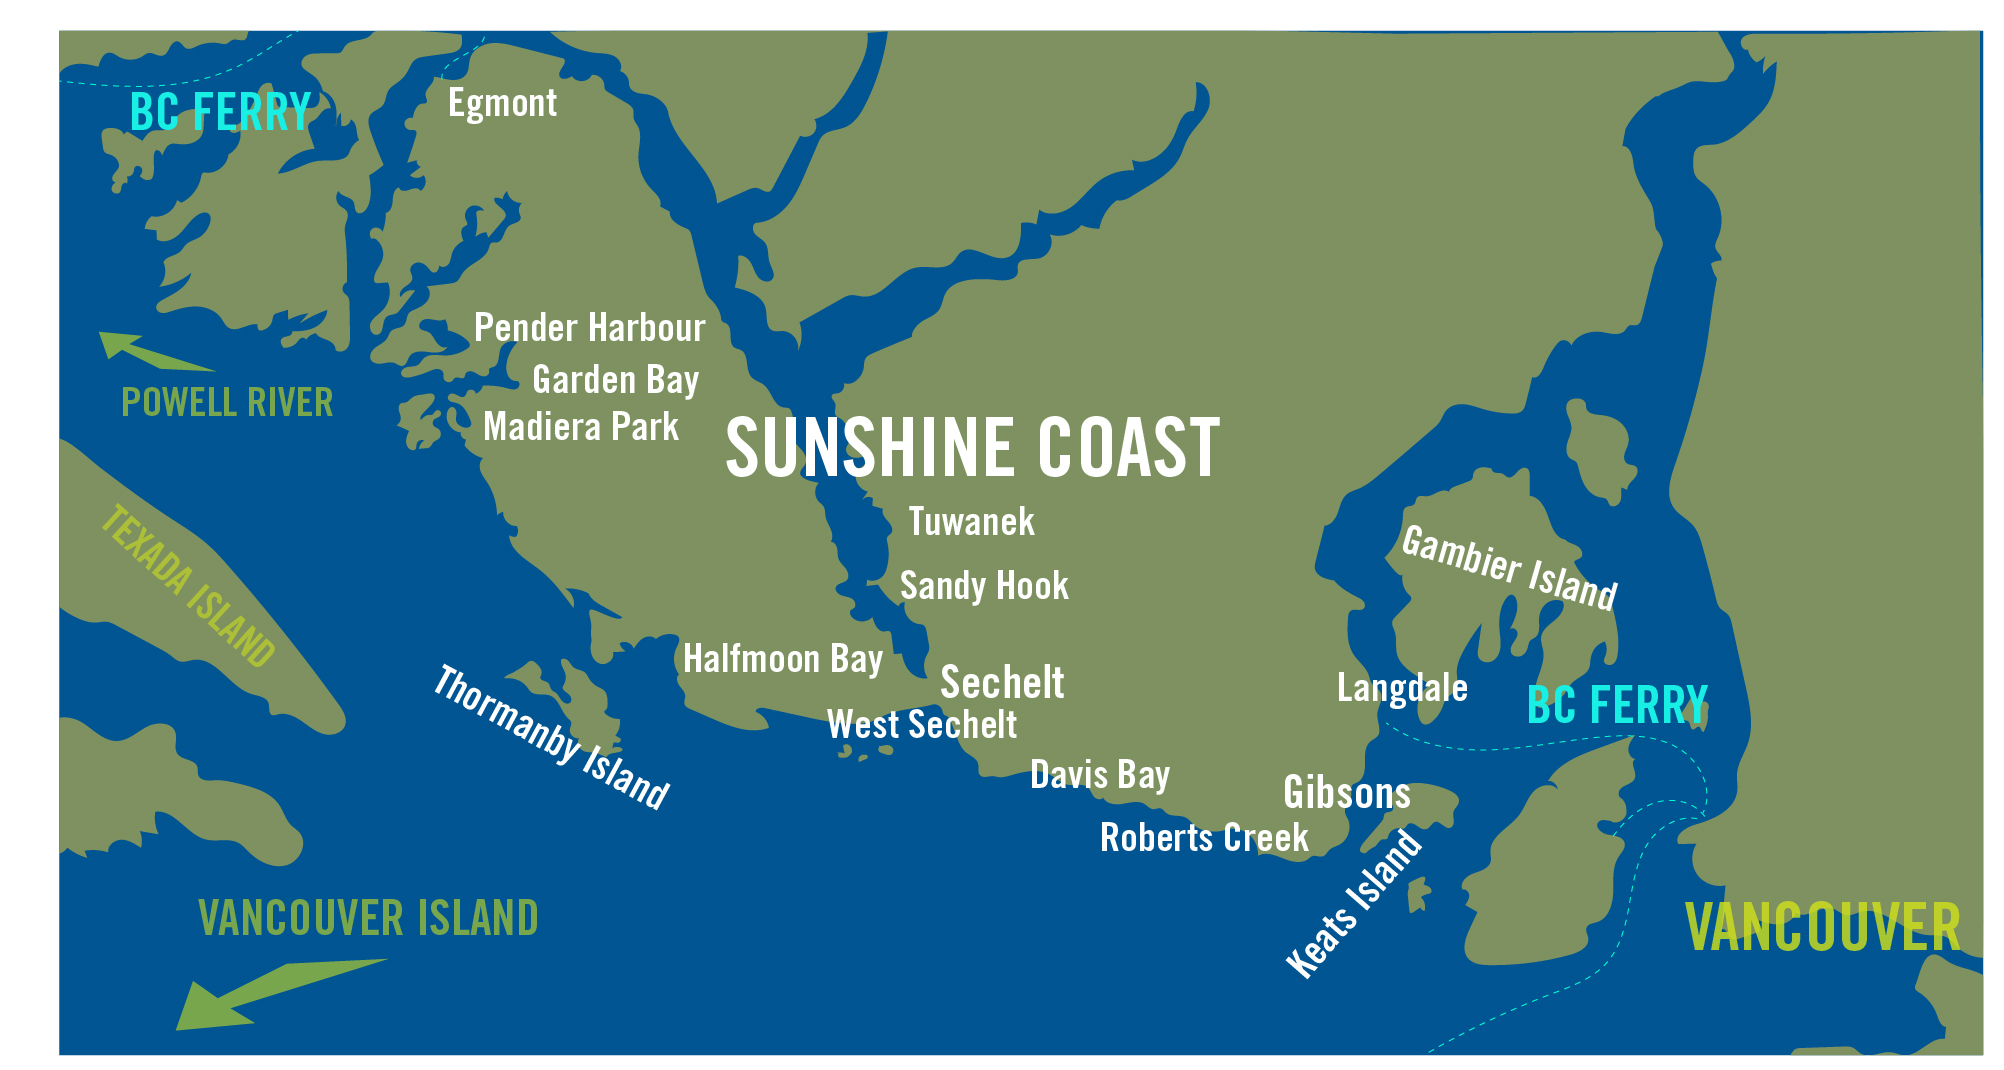 First Response proudly serves communities up and down the Sunshine Coast. Whether you're located in a central area or a remote island spot, we will make it to you in a timely manner.